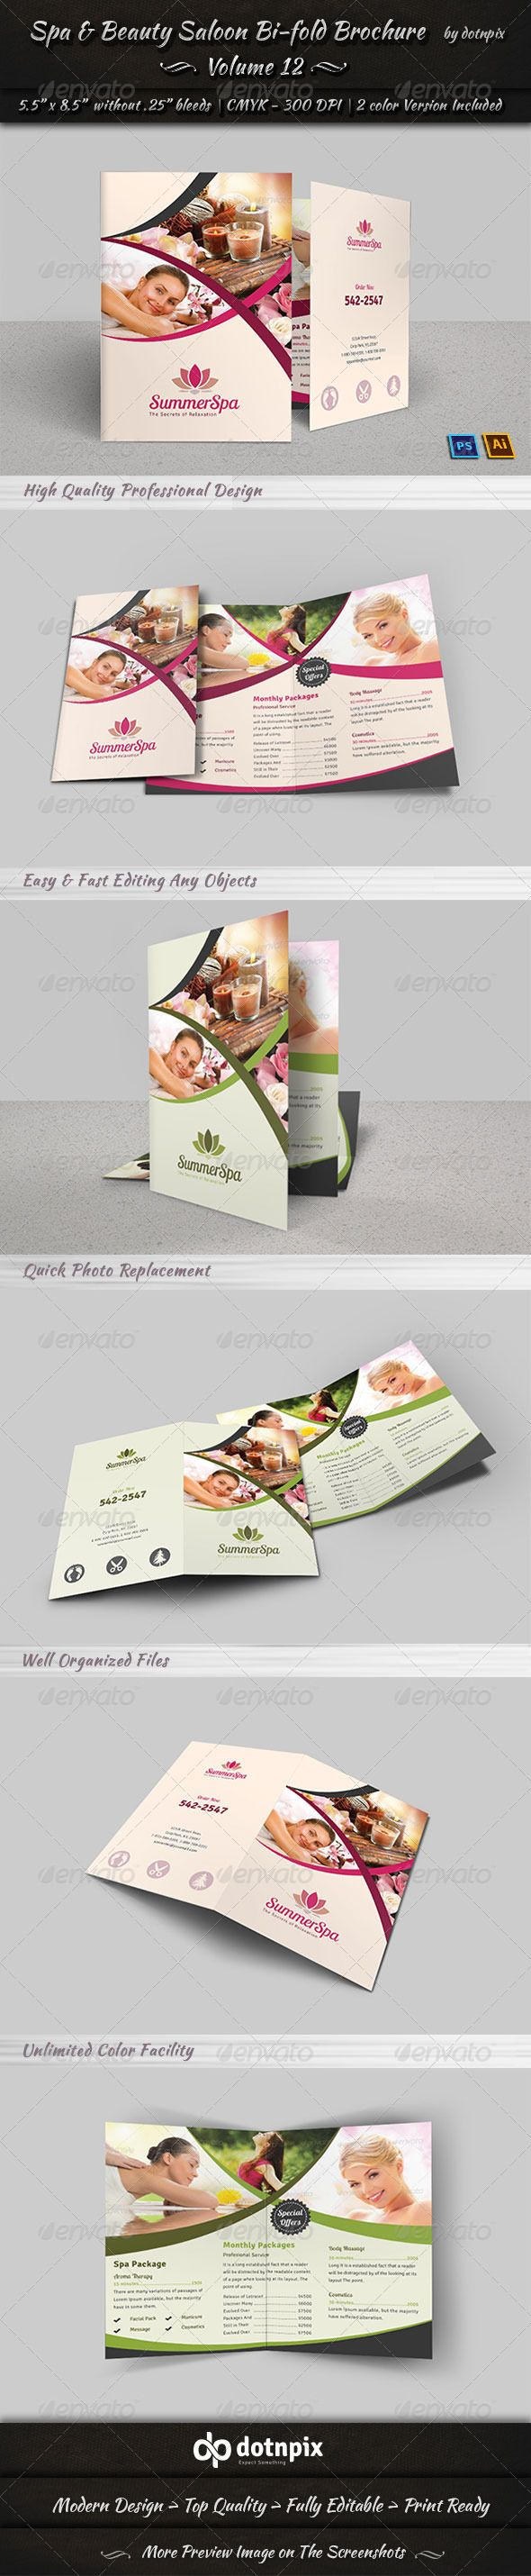 Spa U0026 Beauty Saloon Bi Fold Brochure | Volume 12